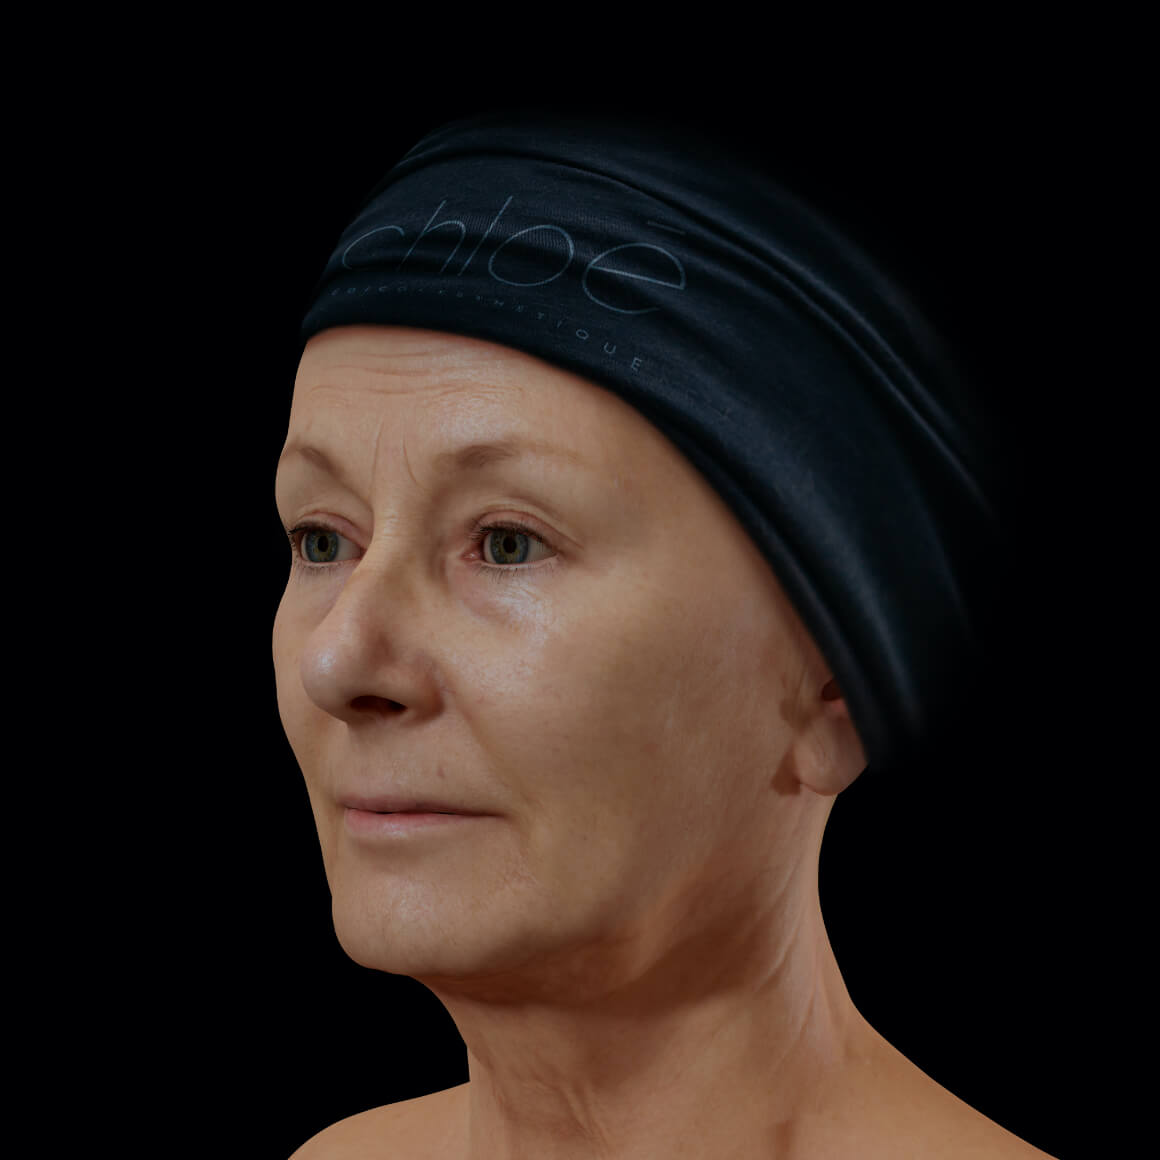 A female patient at Clinique Chloé, positioned at an angle, showing wrinkles and fine lines on her face